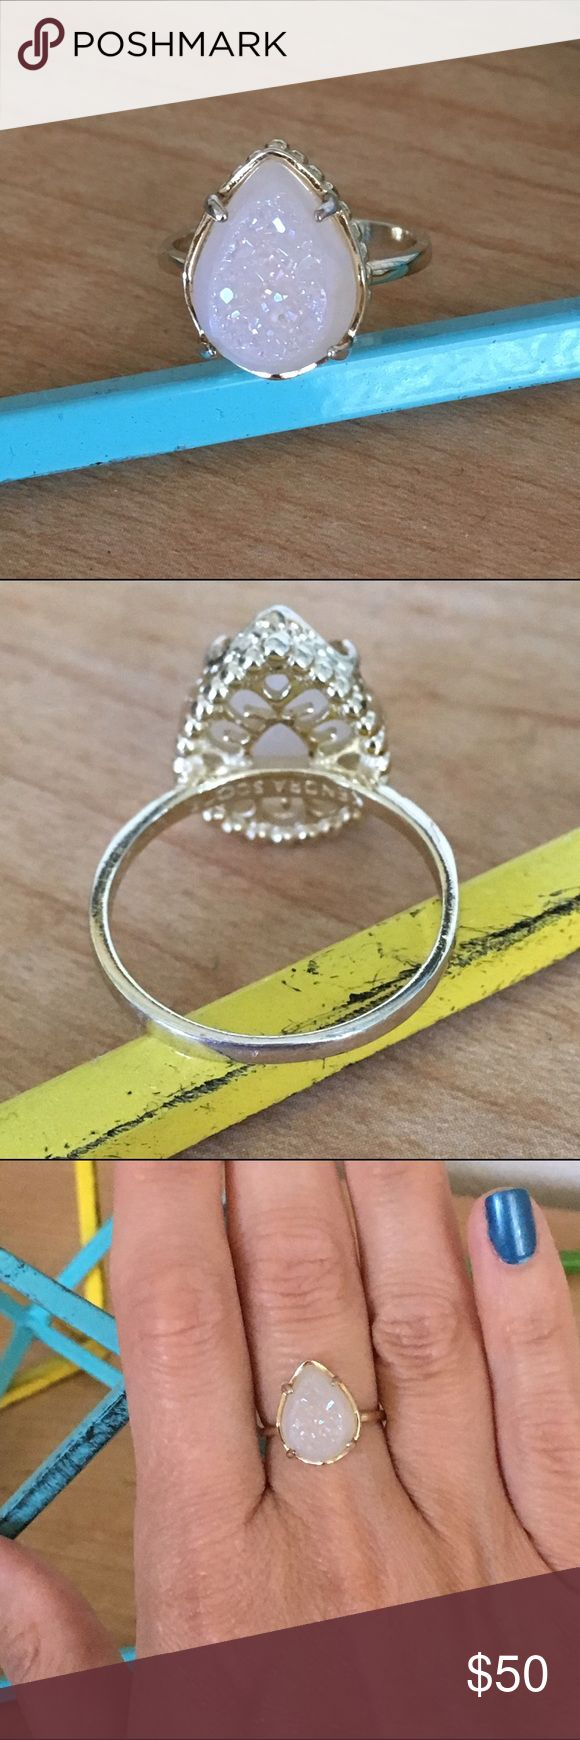 Kendra Scott Daisy Ring Gold tone metal Iridescent Drusy stone size 7 dust bag included EUC NO TRADES Kendra Scott Jewelry Rings